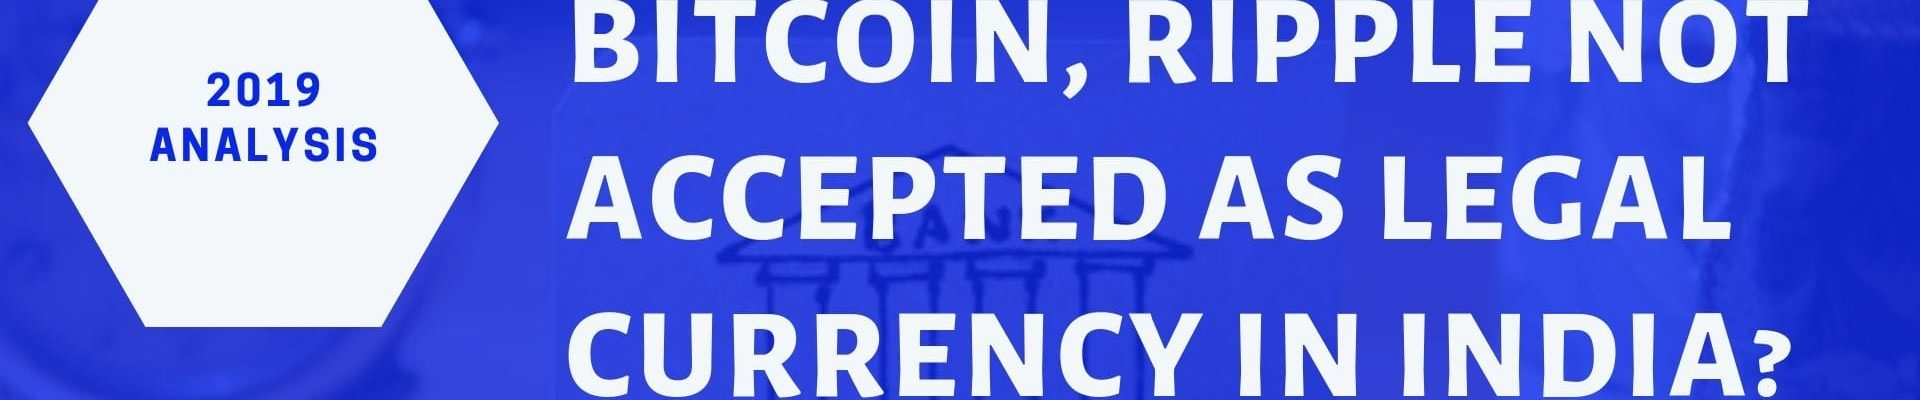 Why is cryptocurrency not accepted as legal currency in India 2019 reasons